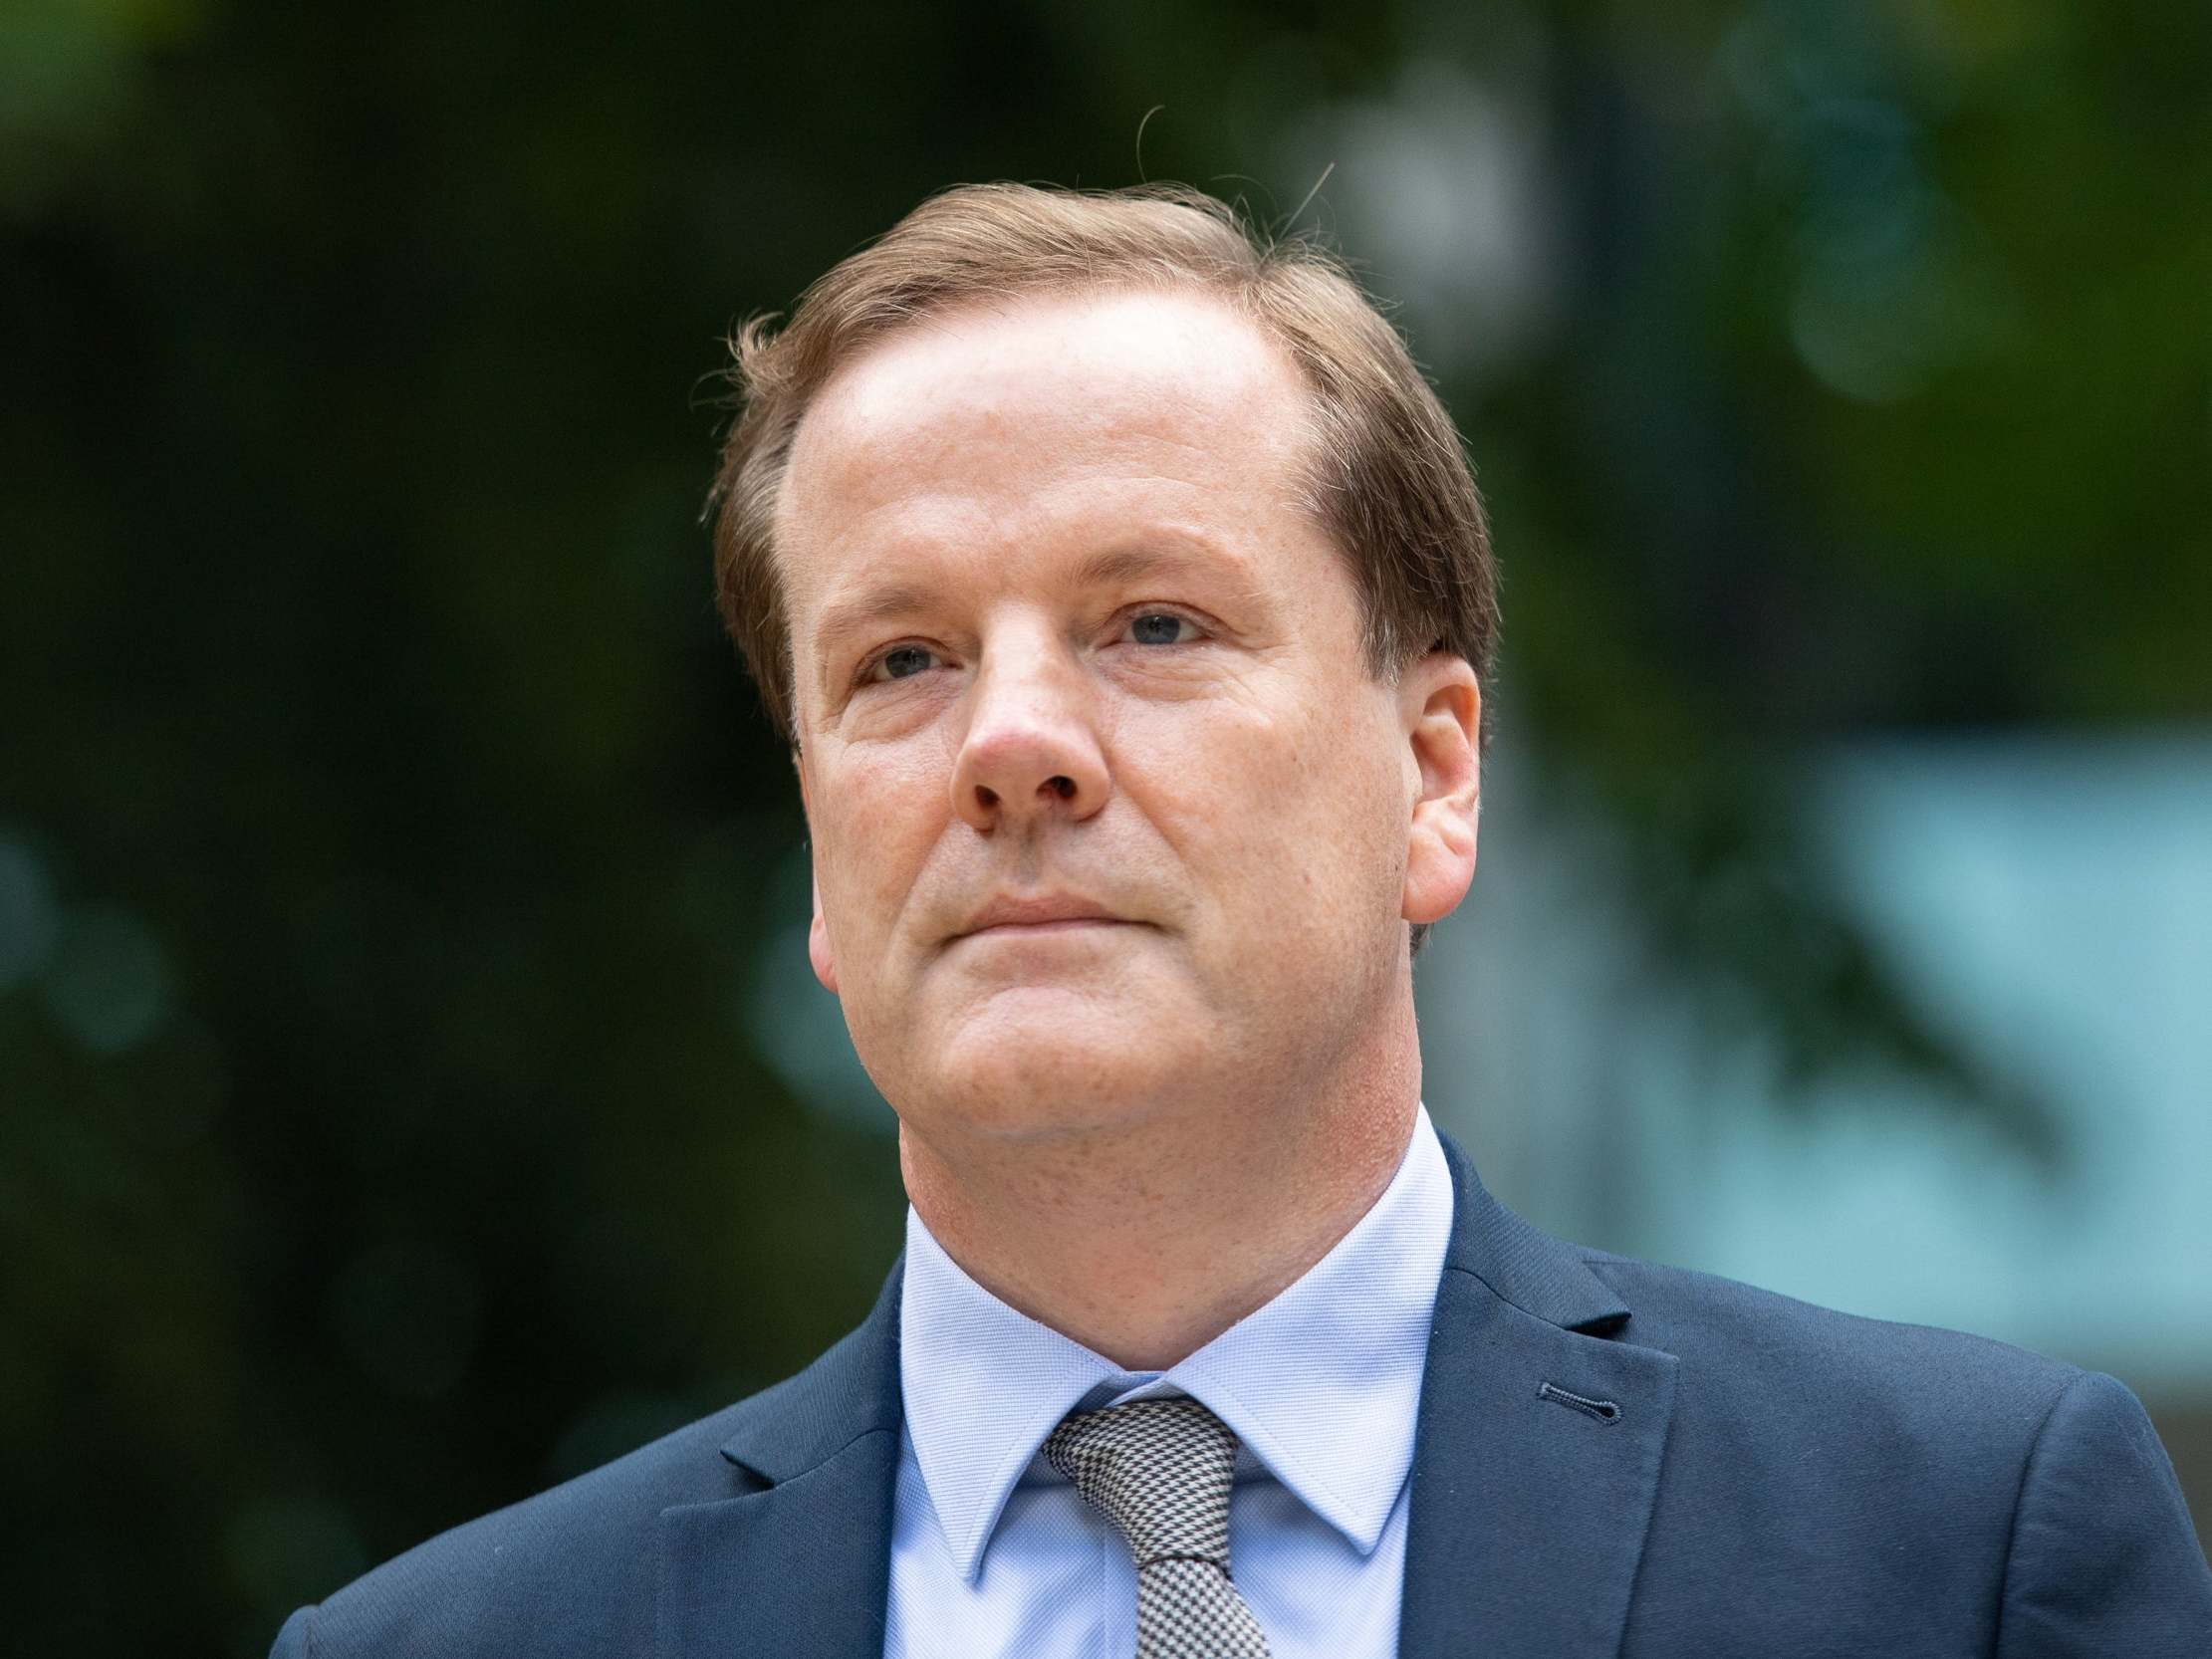 Charlie Elphicke Former Tory Mp Sexually Assaulted Woman